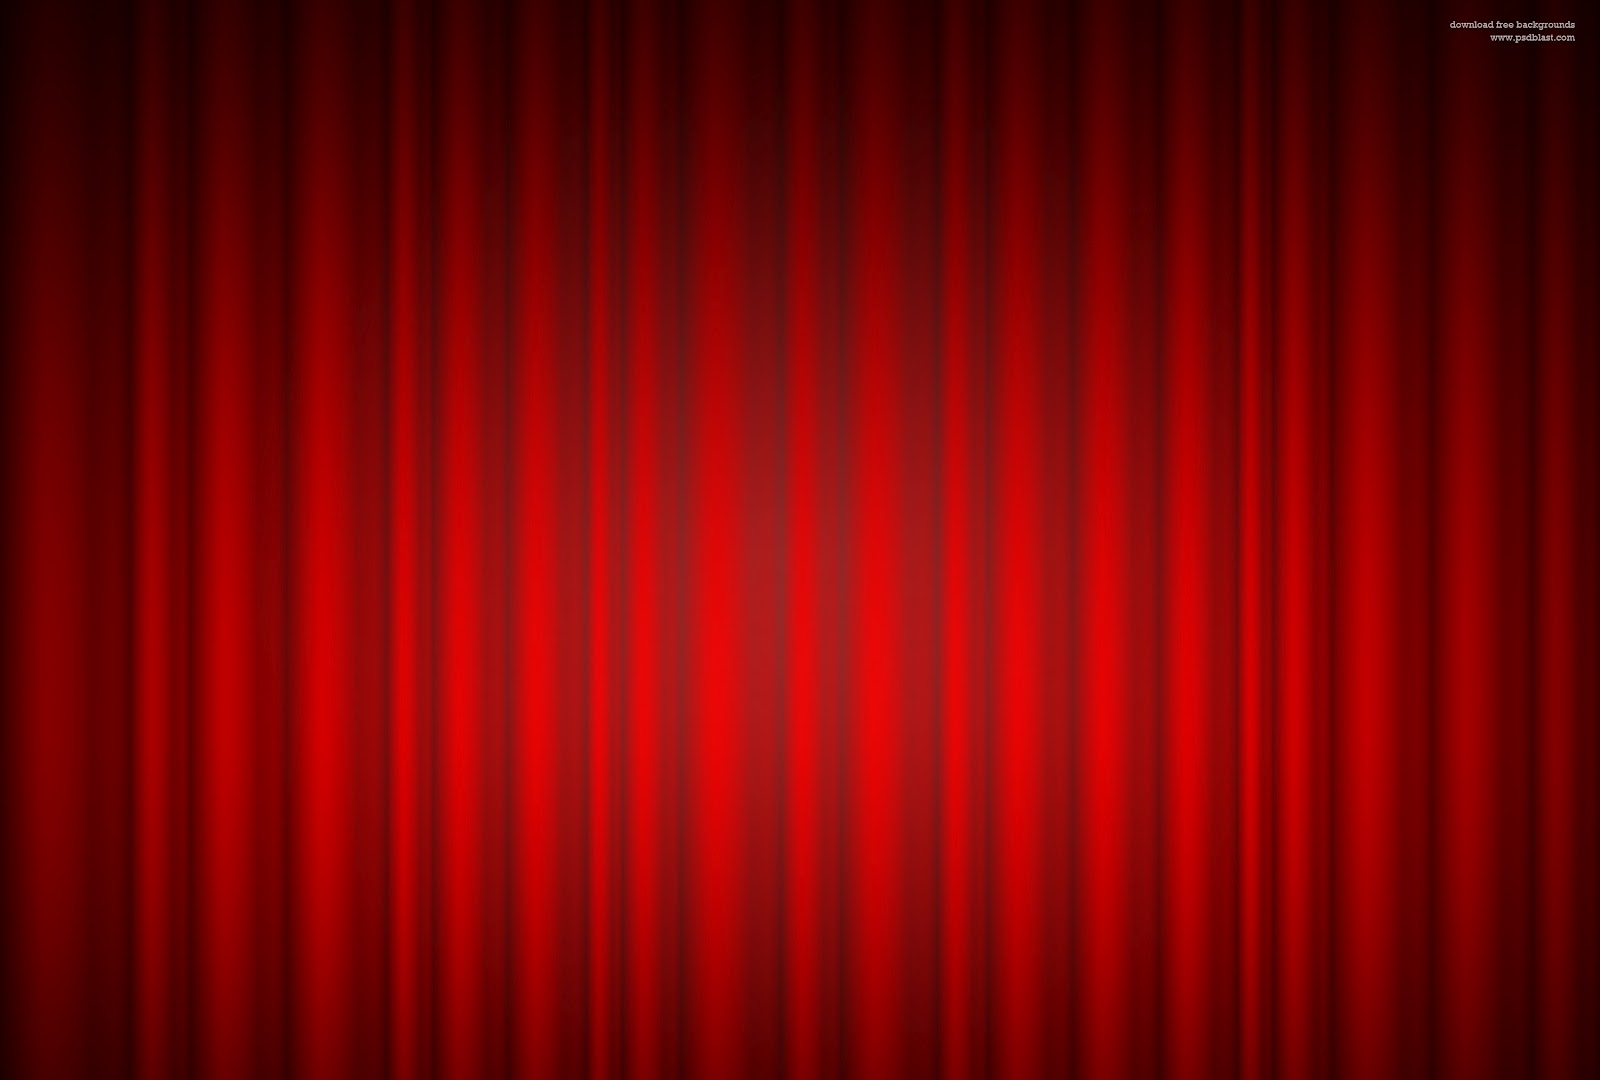 Fmx Wallpaper Hd Free Psd Store Red Curtain Background